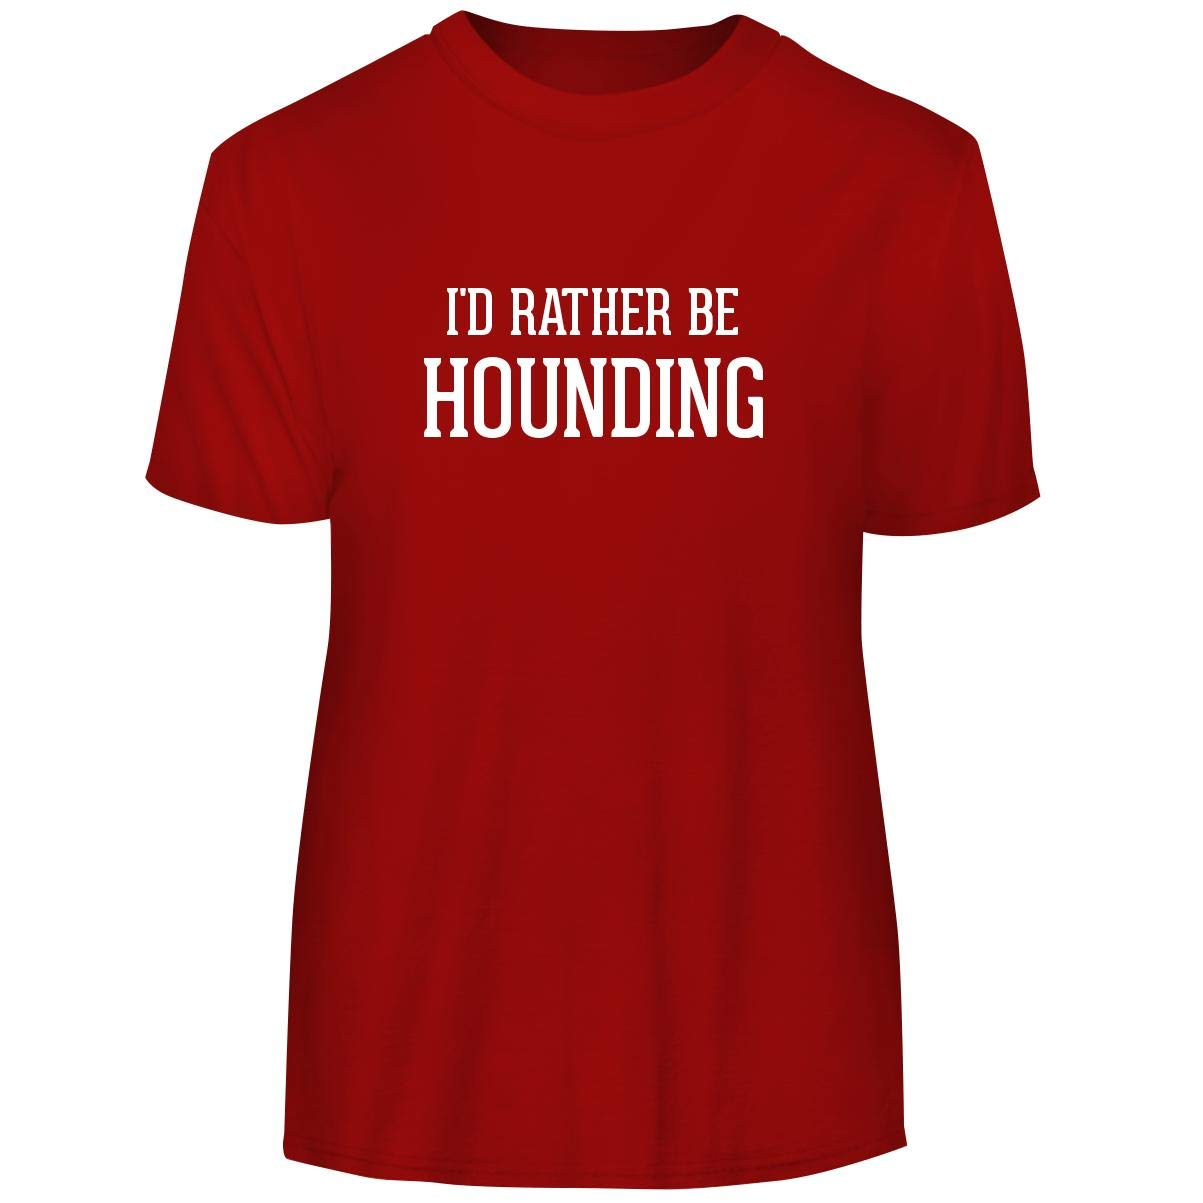 One Legging it Around I'd Rather Be Hounding - Men's Funny Soft Adult Tee T-Shirt, Red, Large